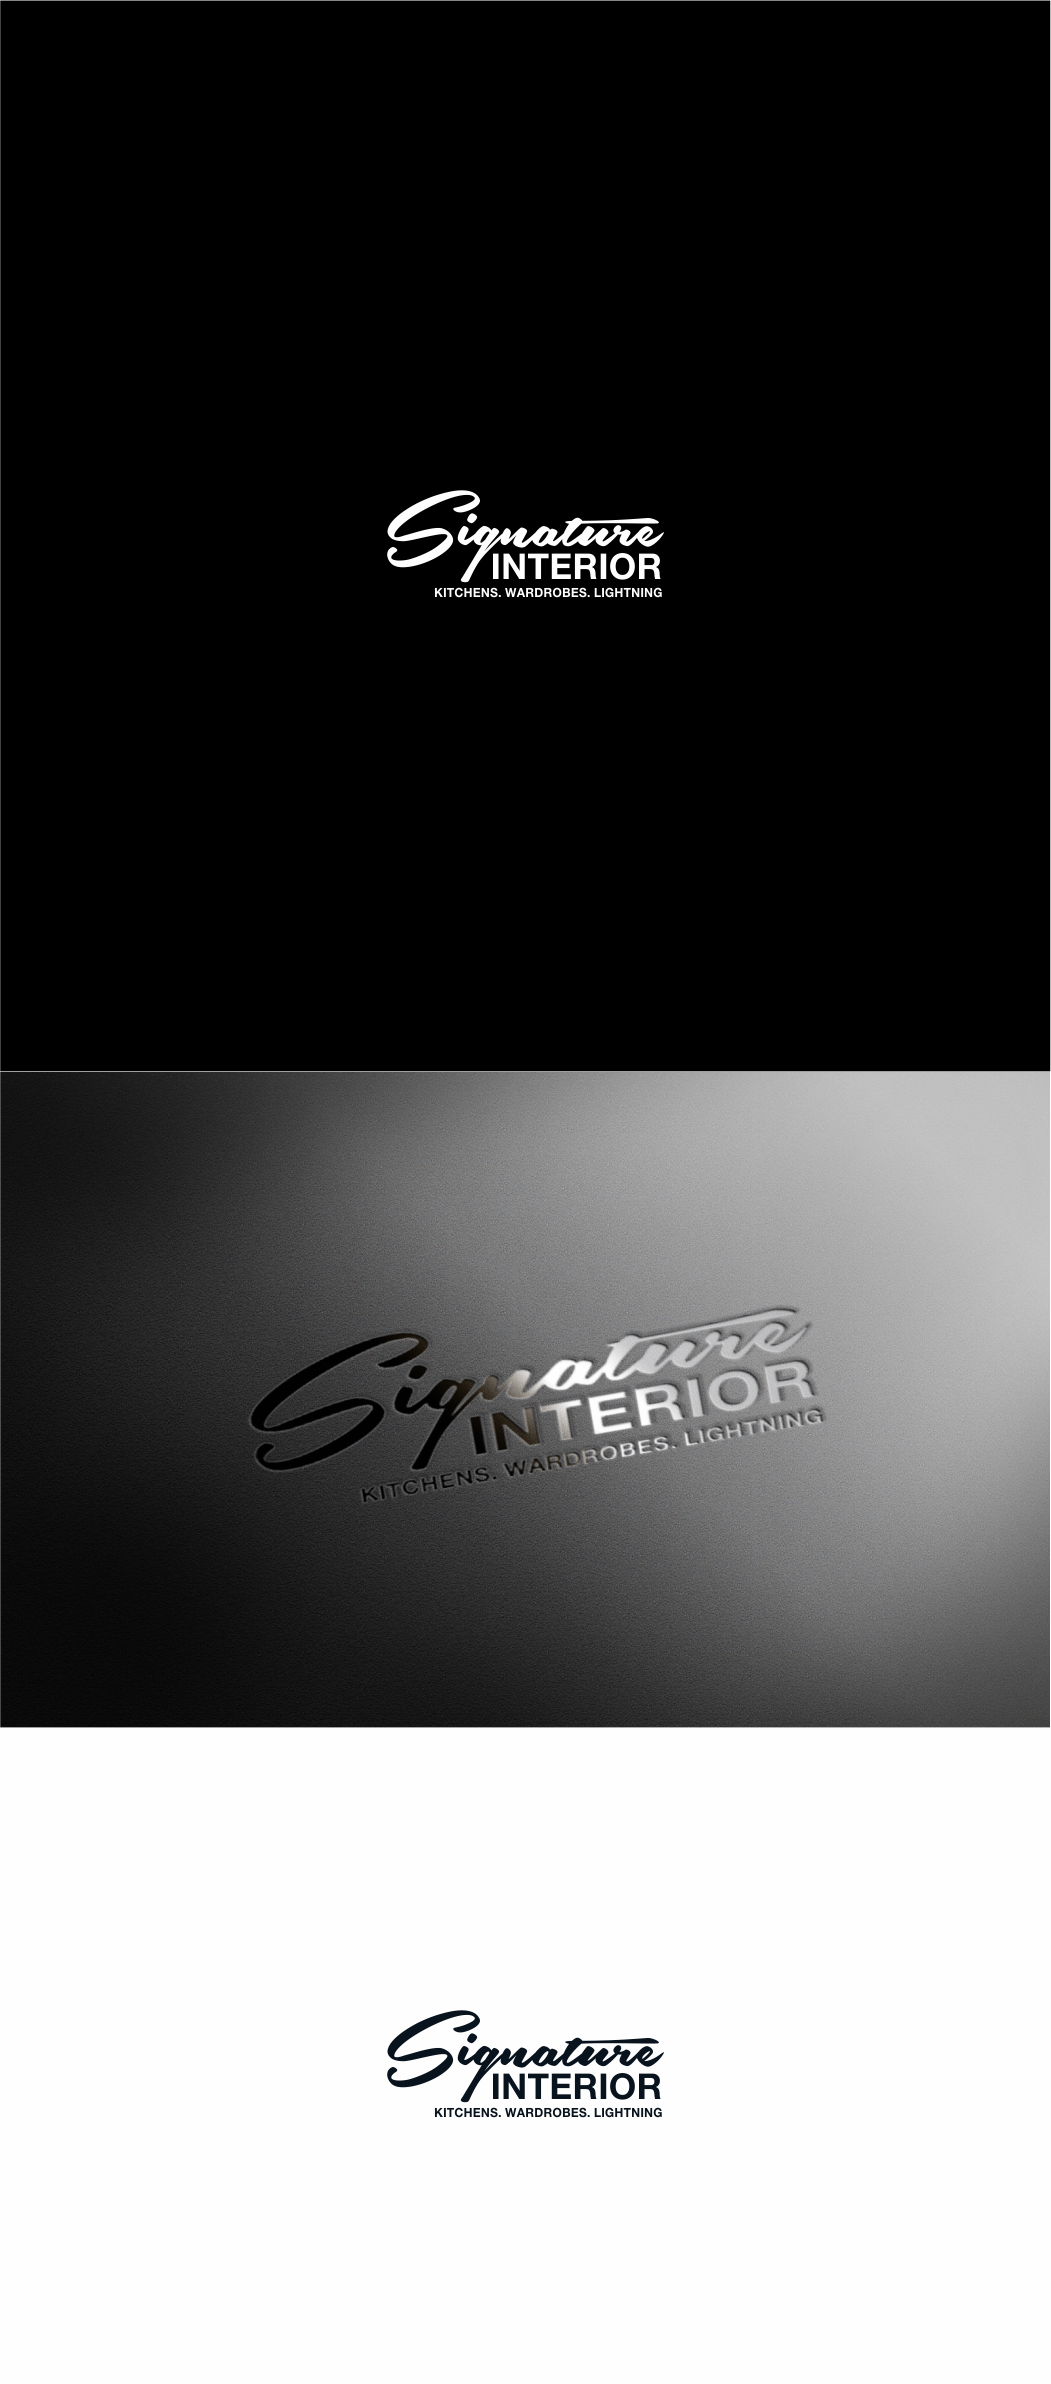 Signature furniture store looking for new logo prize guarantee !!!